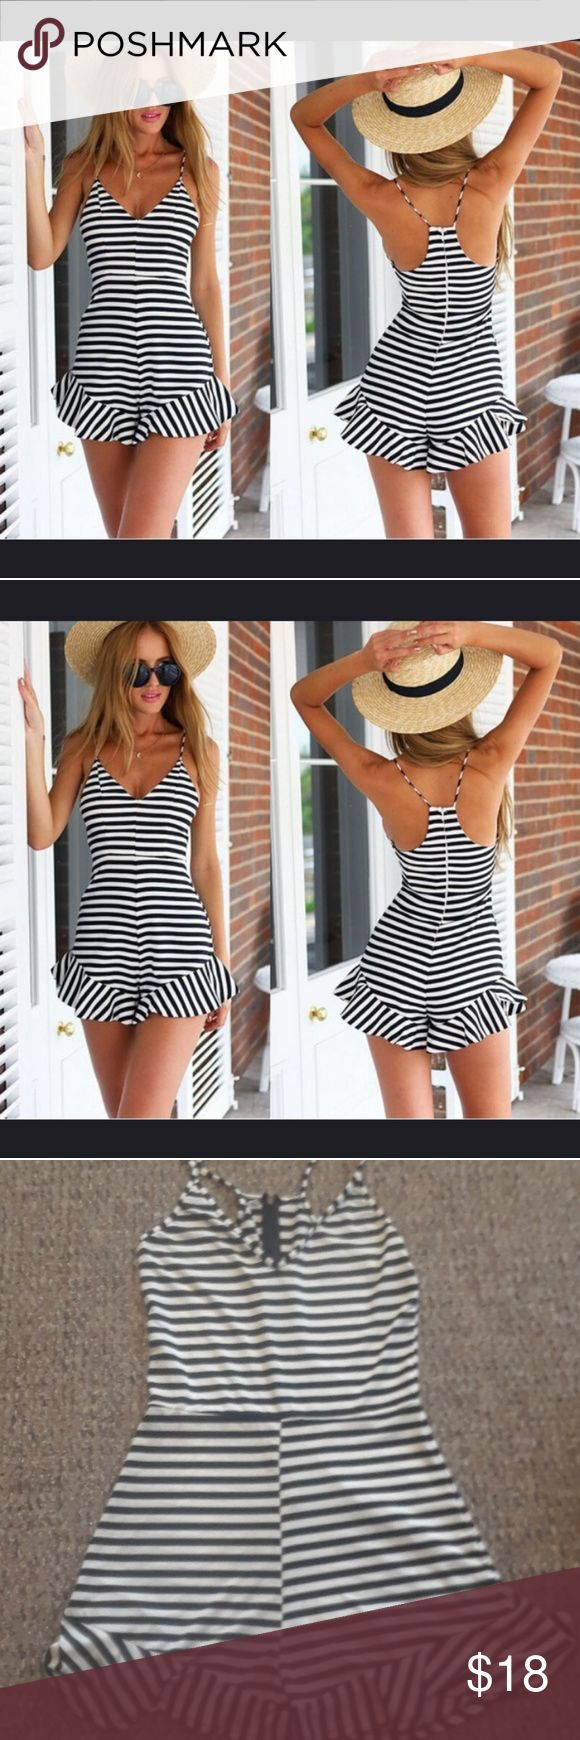 Black and white striped romper Black and white striped romper size small women's, brand new NEVER worn, v-neck, spaghetti straps, cute one piece shorts, zipper in back for zip up closure. Super soft material. Selling this adorable piece for a great price!New! Shorts